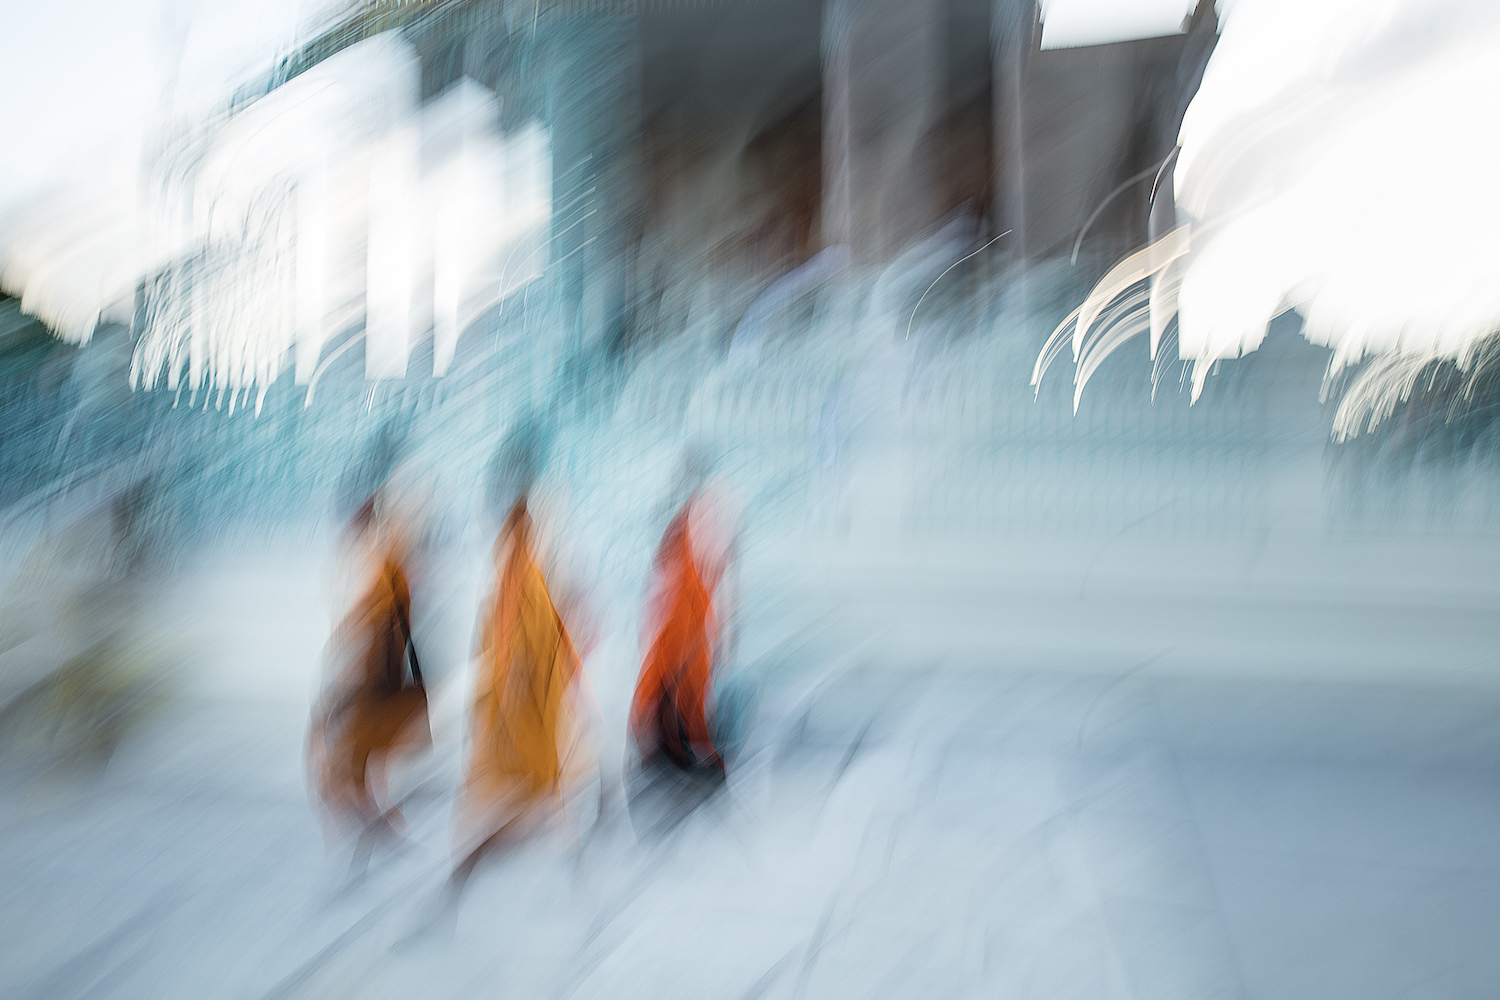 Cambodia_The3Monks_2015_RP.jpg